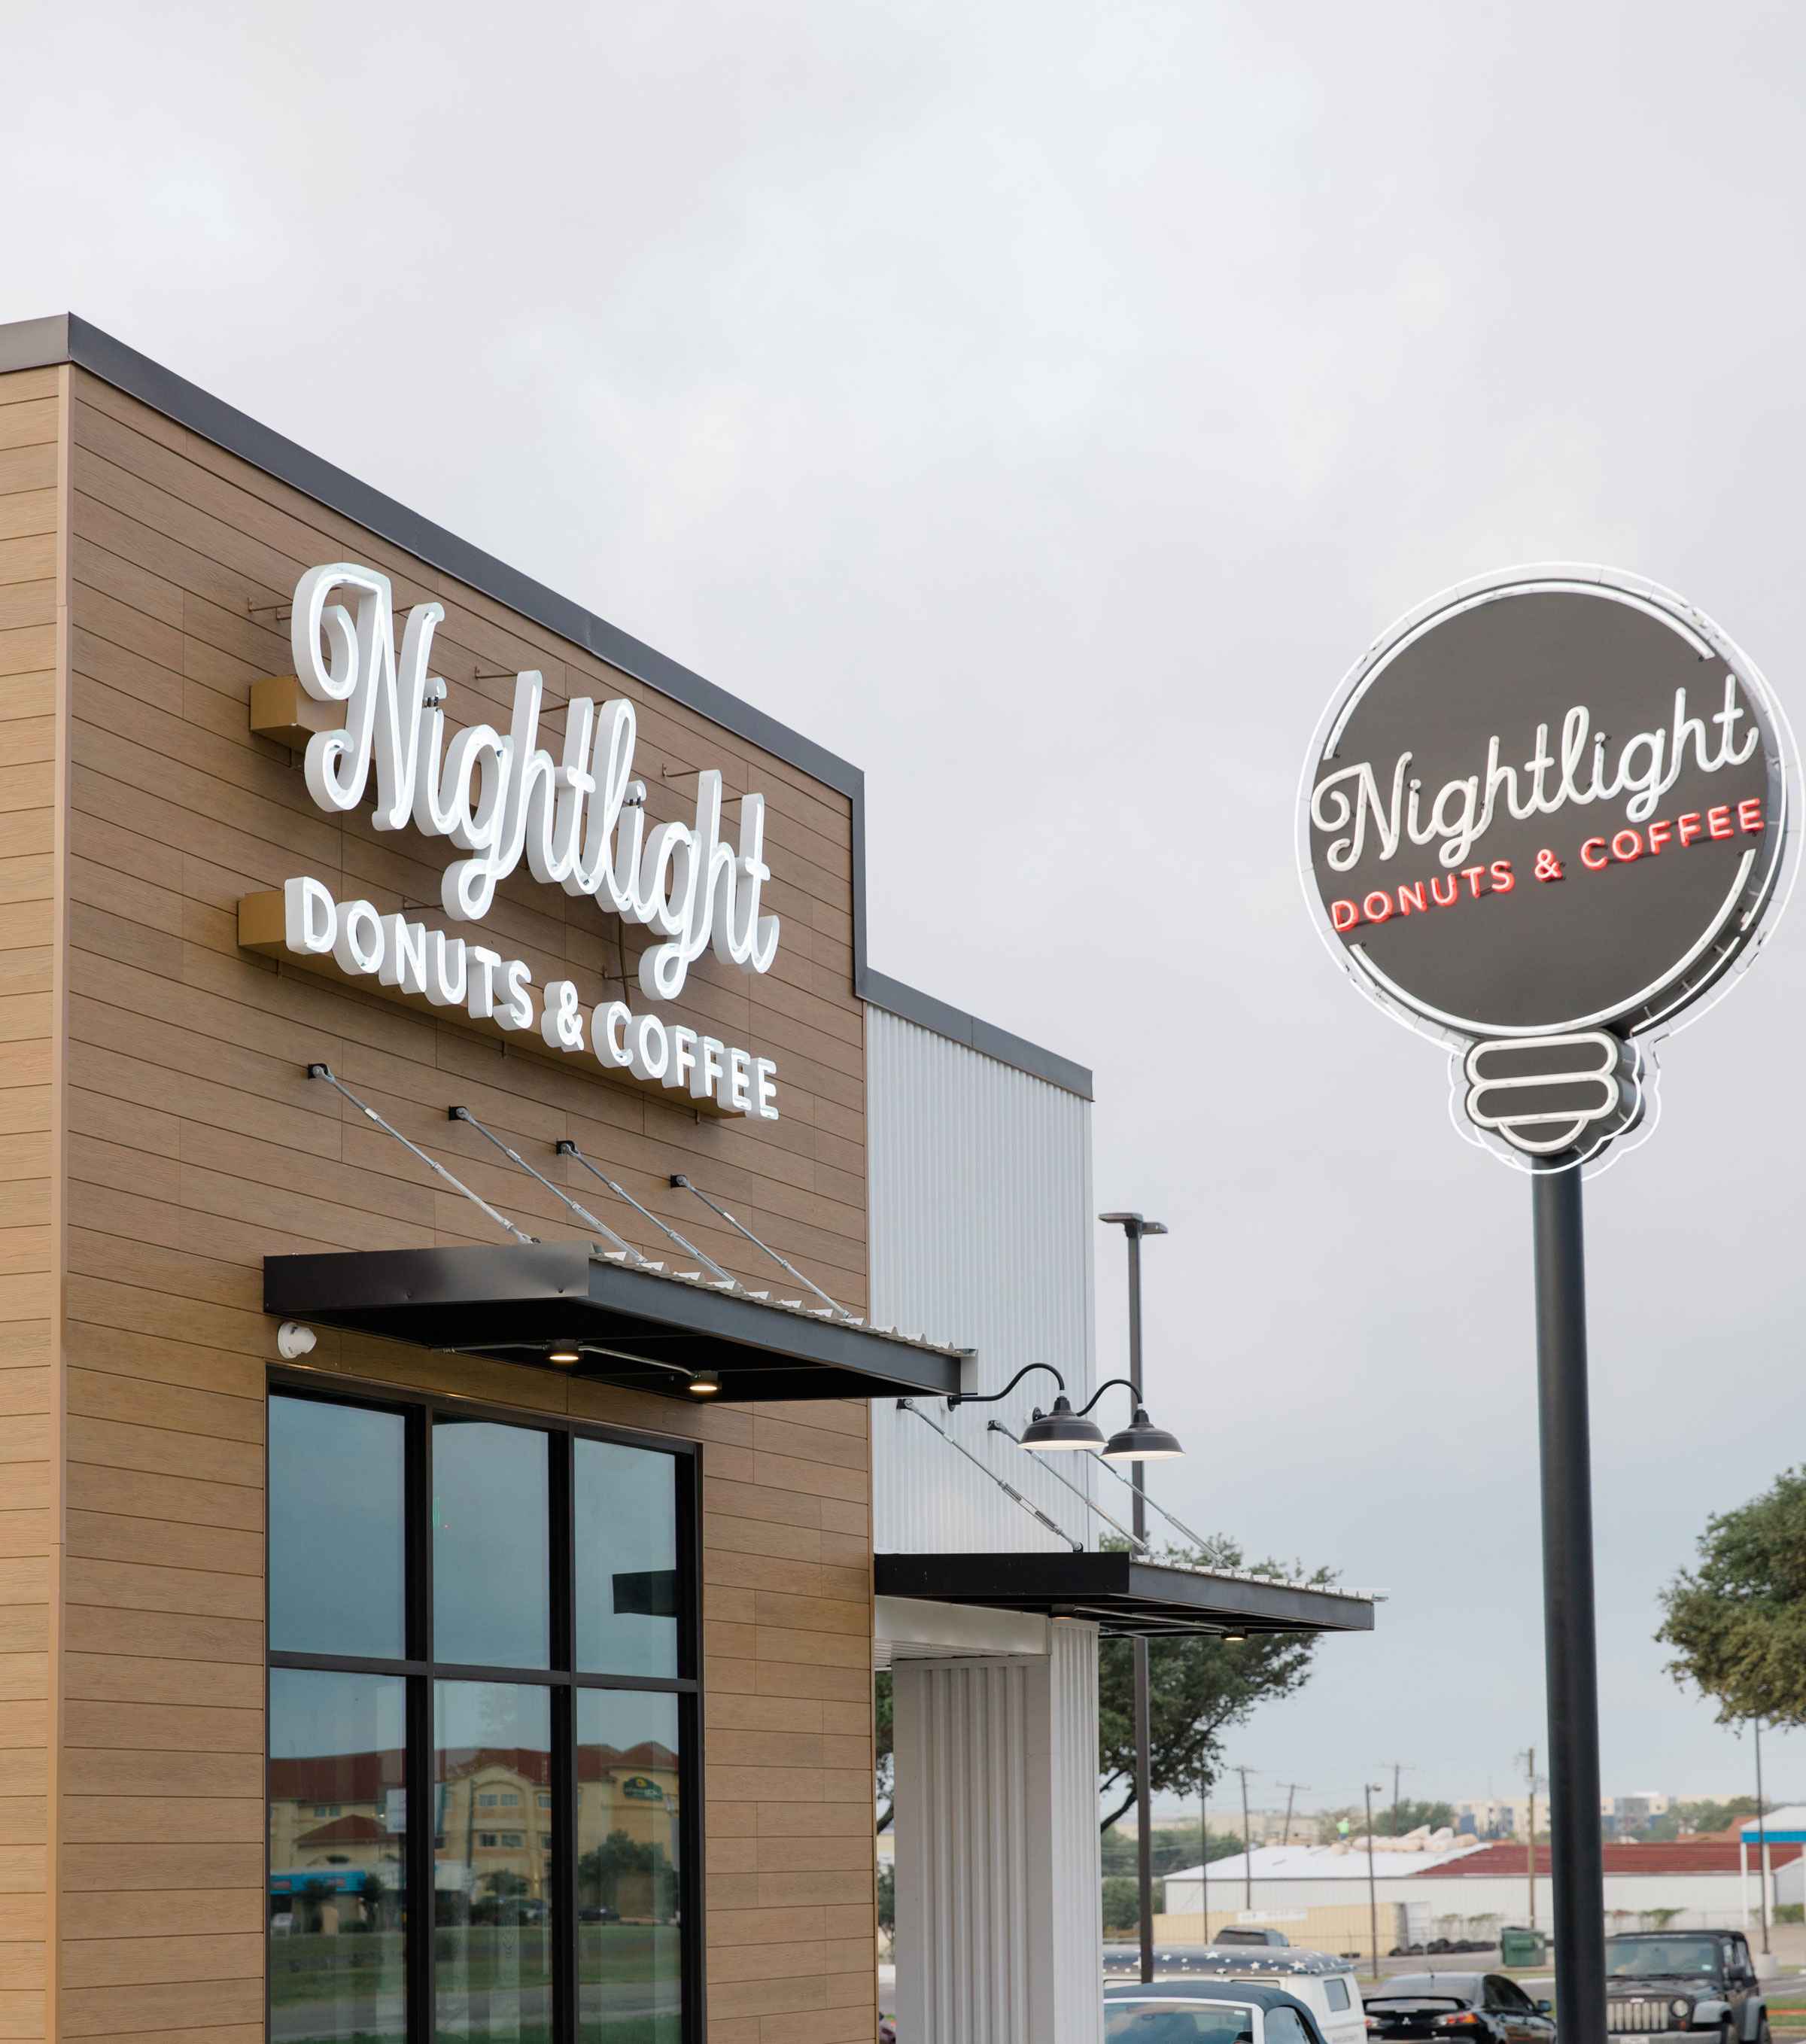 Nightlight Donuts & Coffee Building